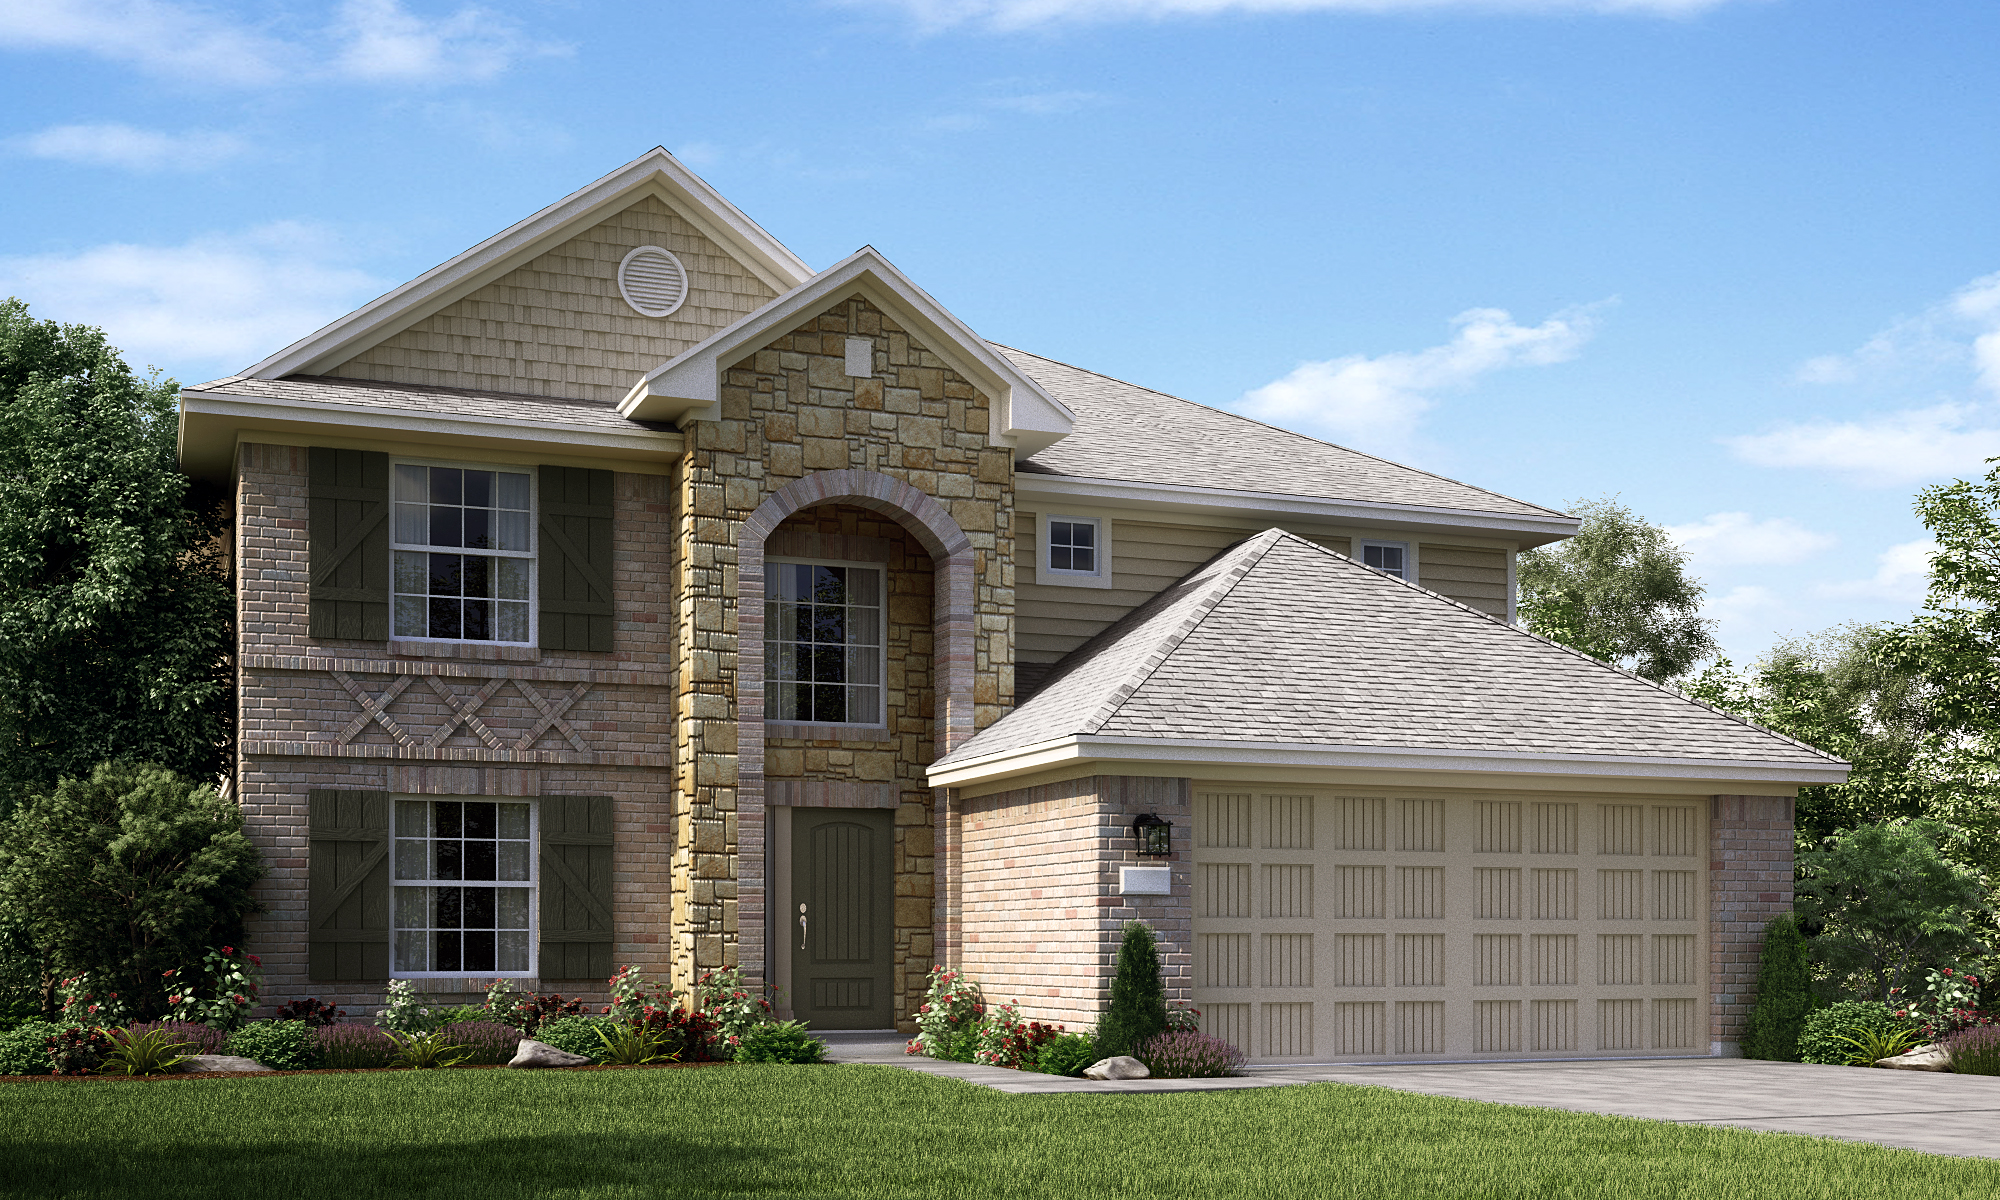 A32480%20Lennar%20Houston%206470%20Bluebonnet%20C_FINAL.jpg